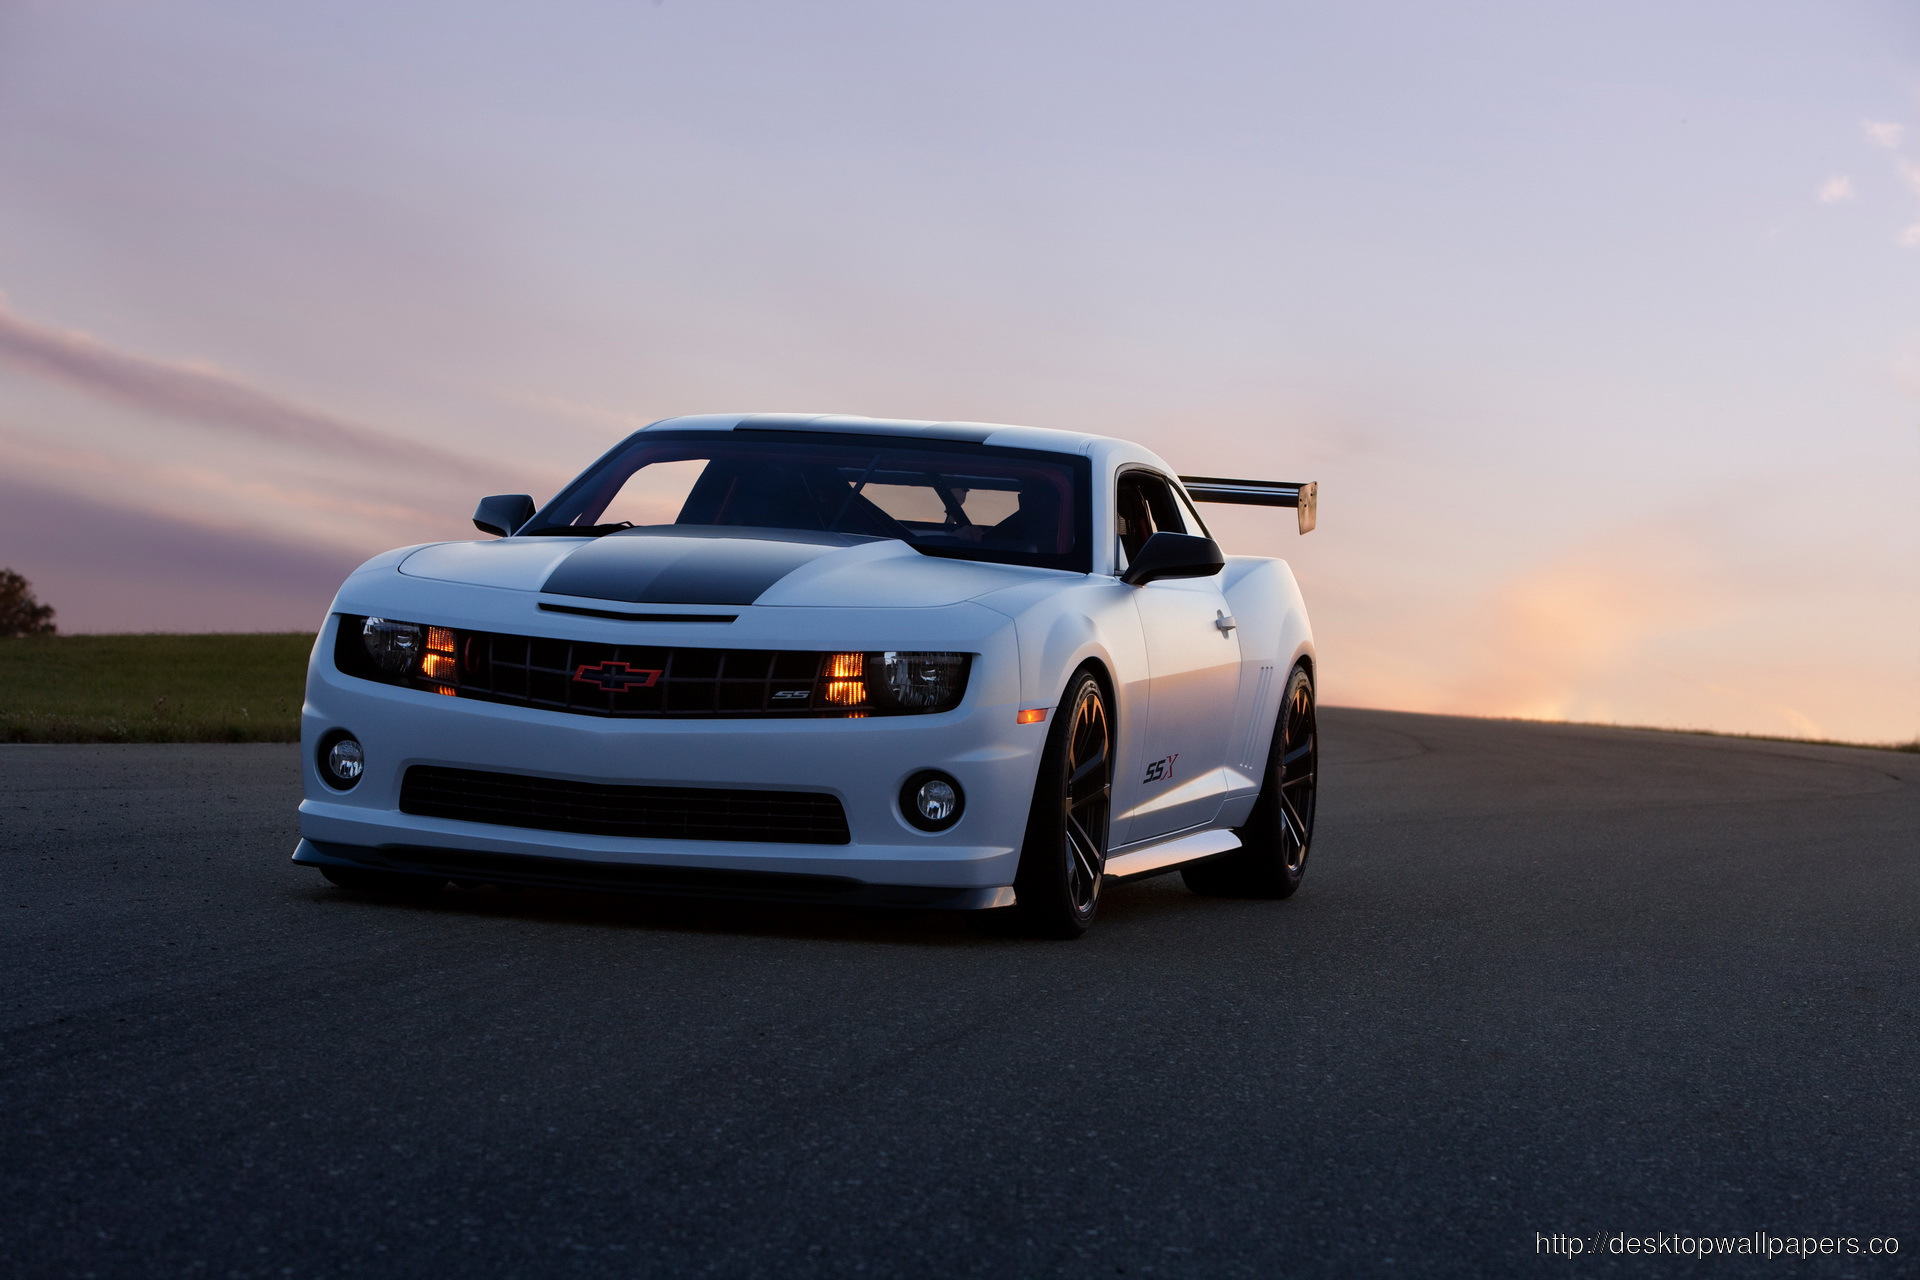 Chevrolet Camaro Car PictureDesktop Wallpapers Download 1920x1280